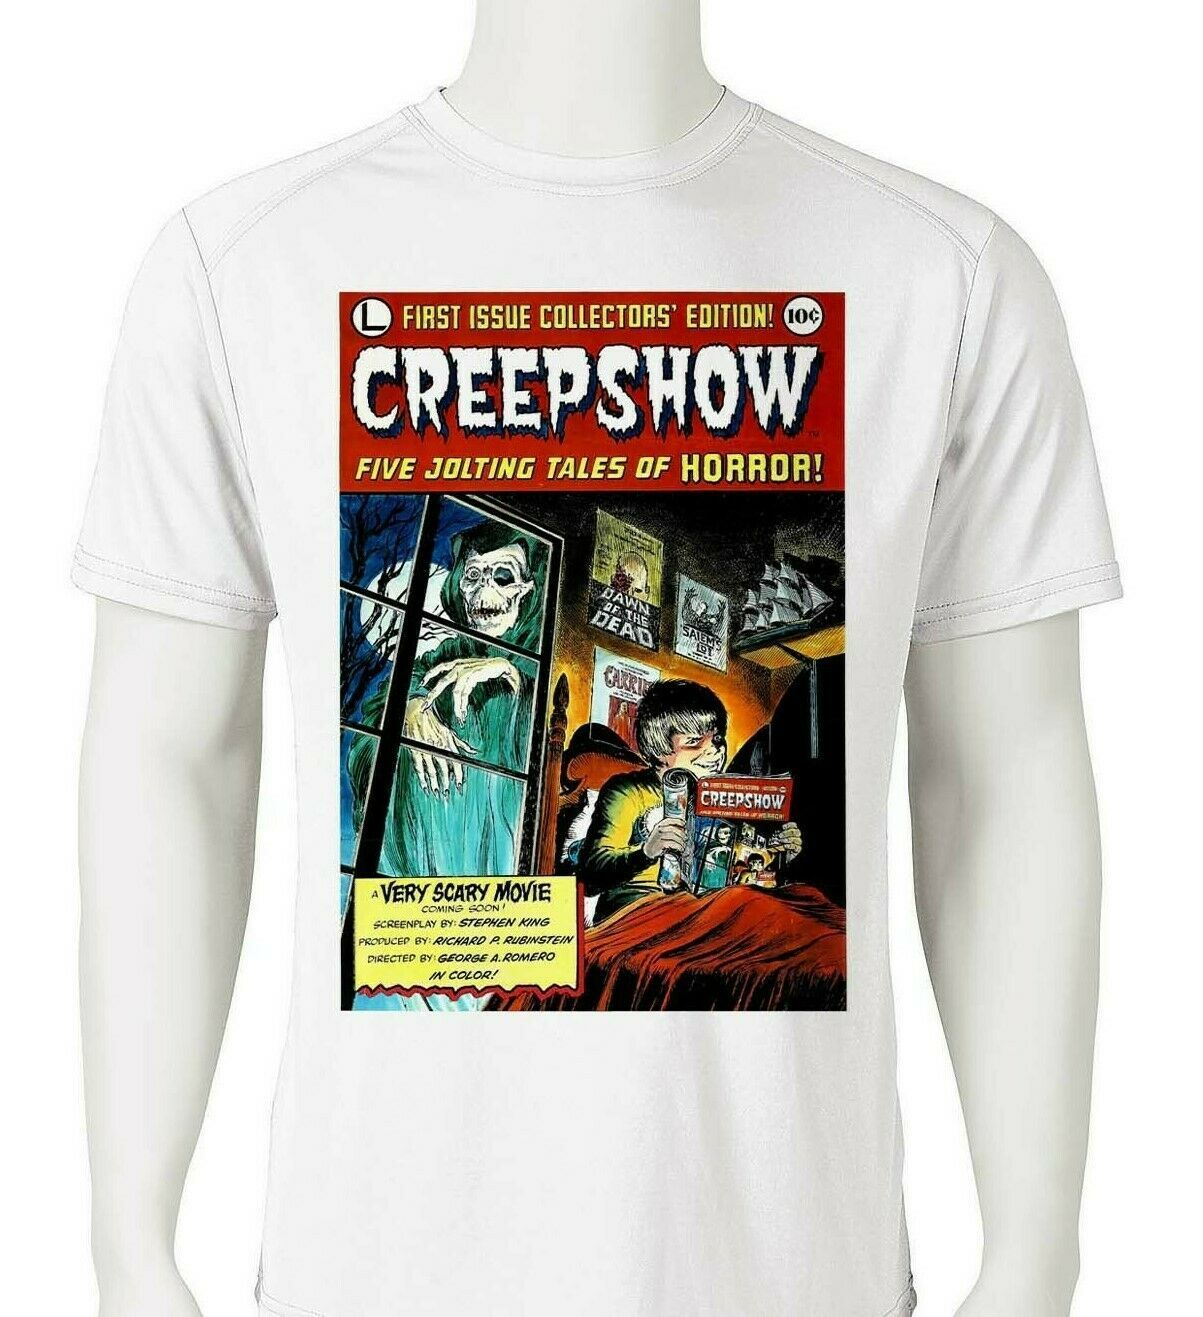 Creepshow Dri Fit graphic T-shirt moisture wicking retro 80s movie SPF tee